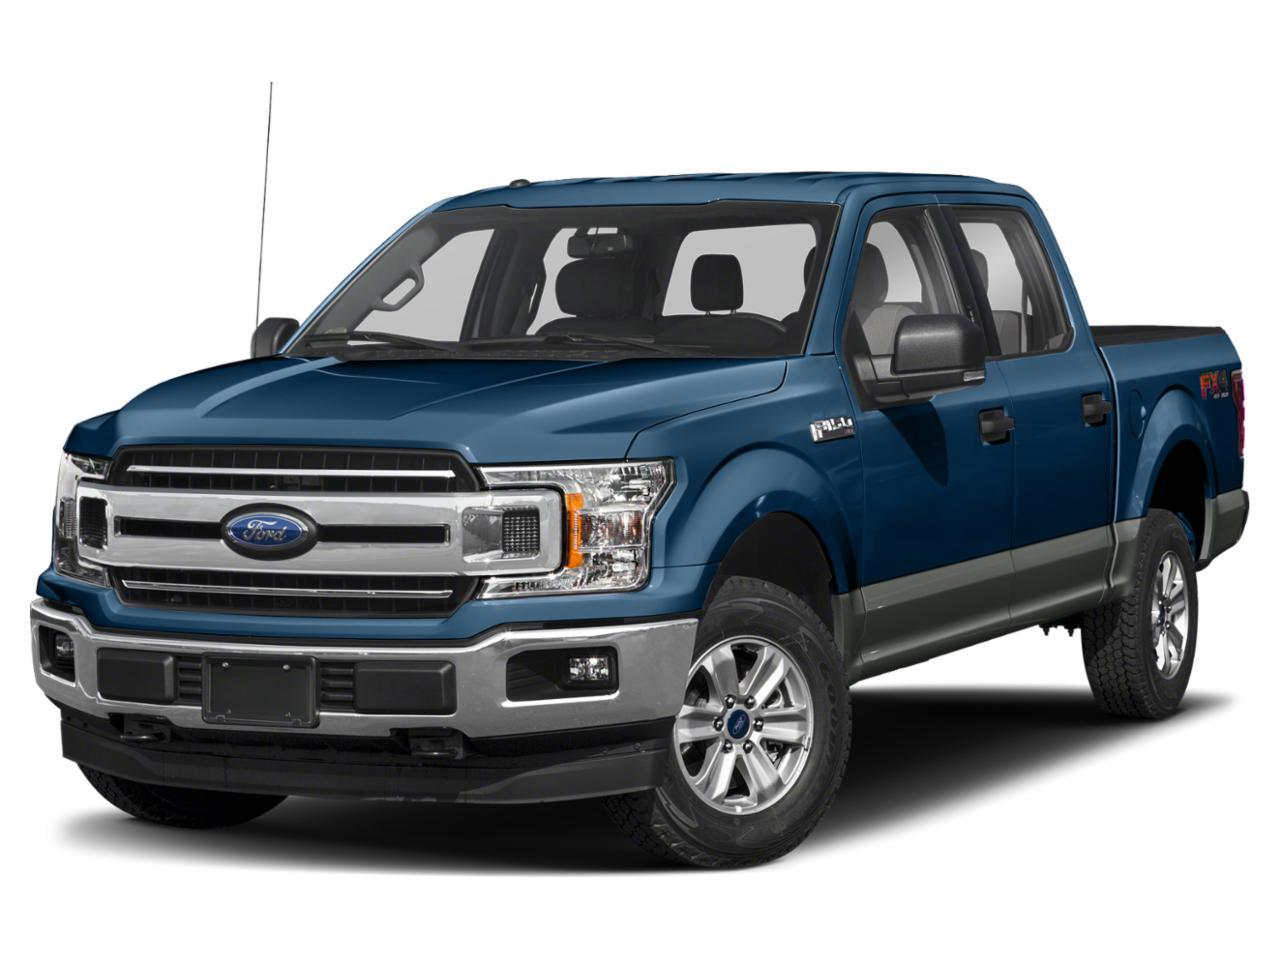 2018 Ford F-150 Vehicle Photo in Corsicana, TX 75110